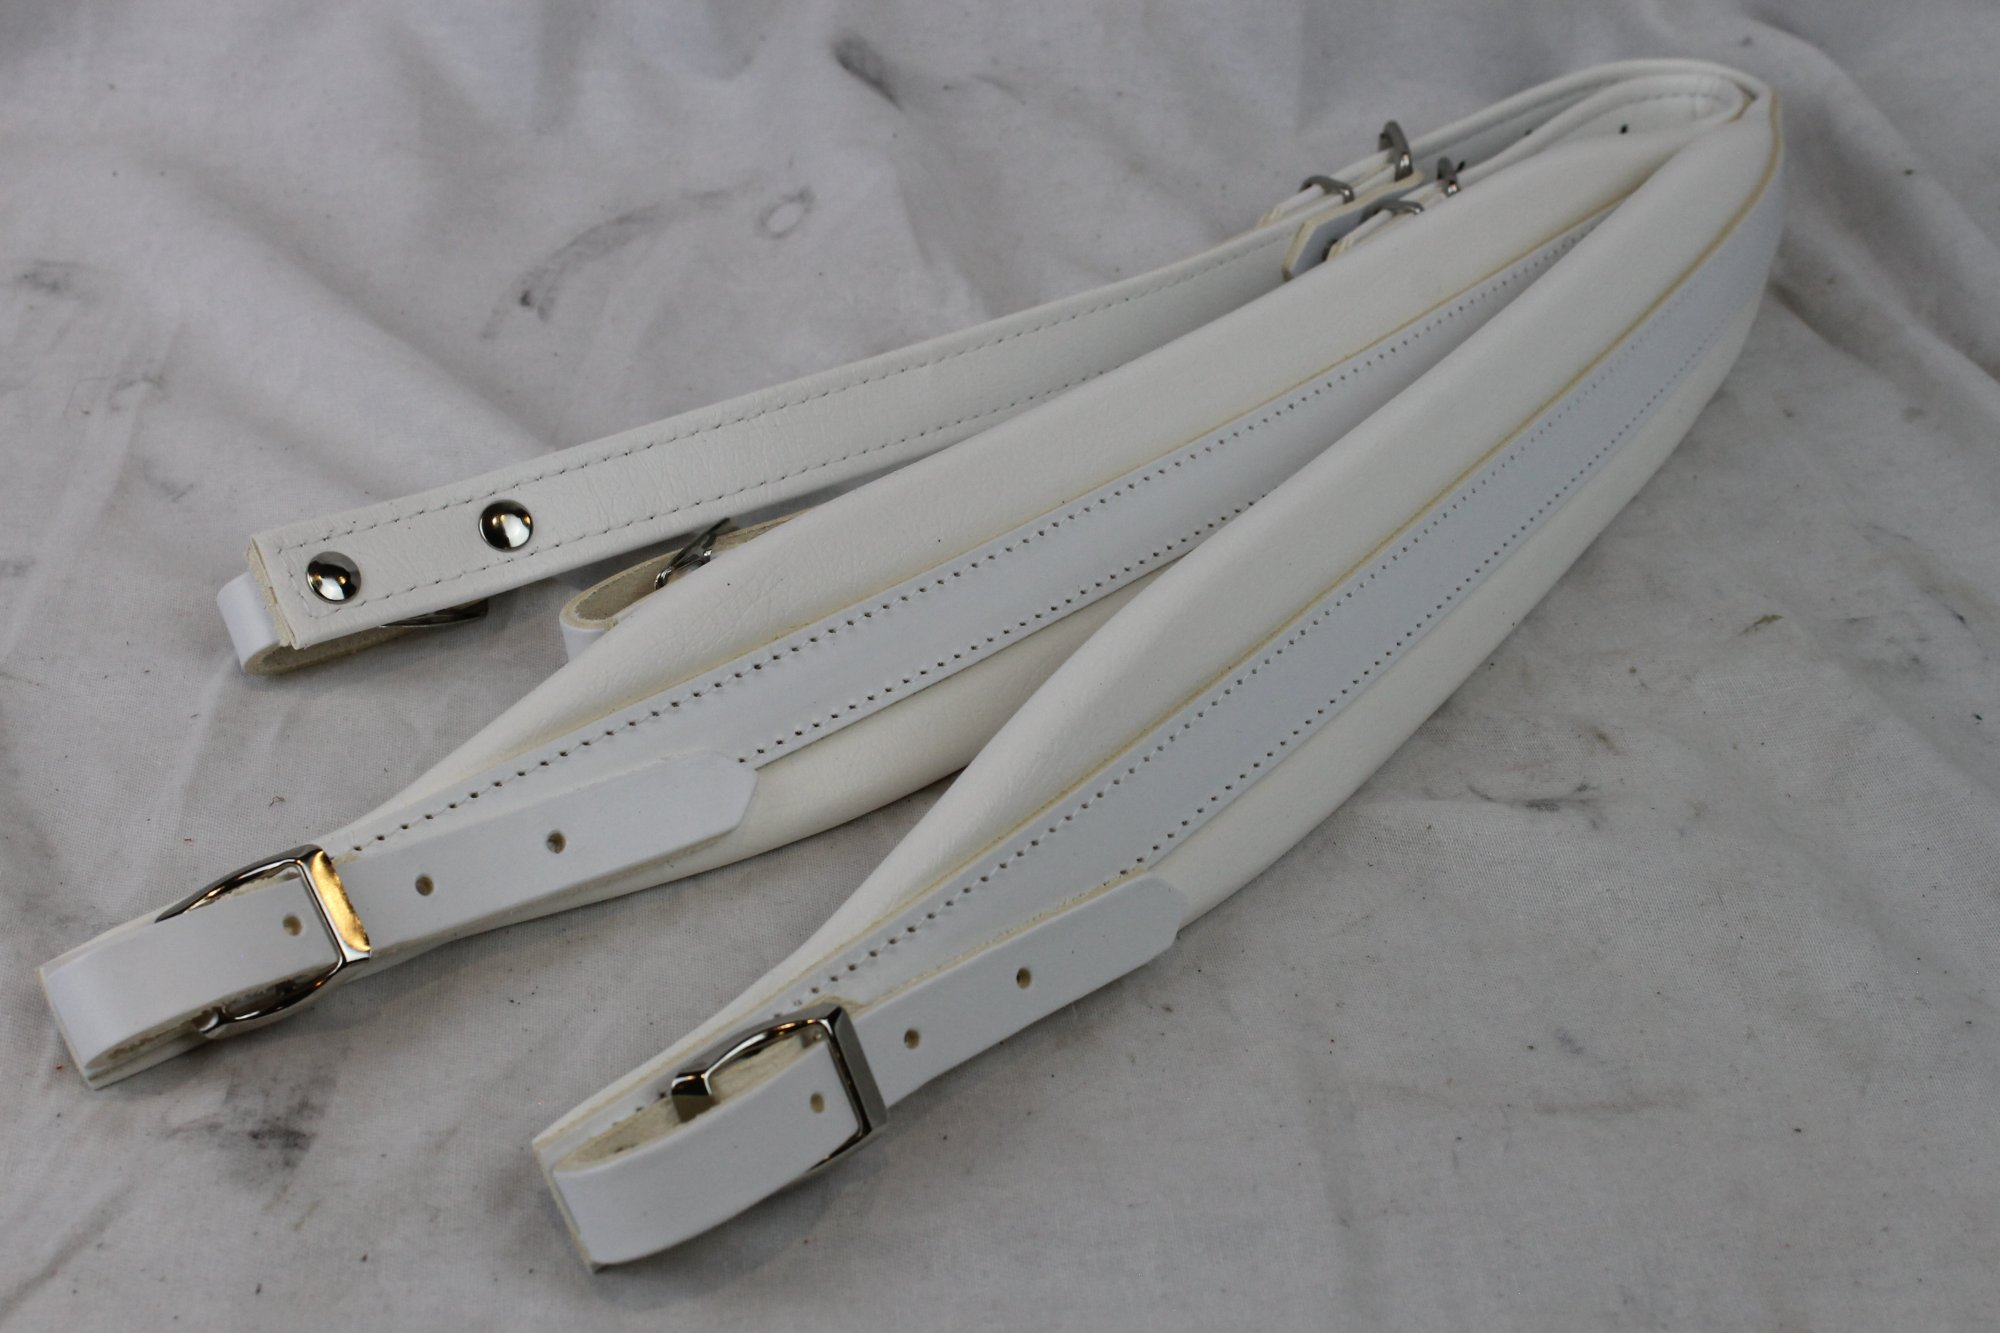 New White Leather Fuselli Accordion Shoulder Straps Width (6cm / 2.4in) Length (85~105cm / 33.5~41.3in)